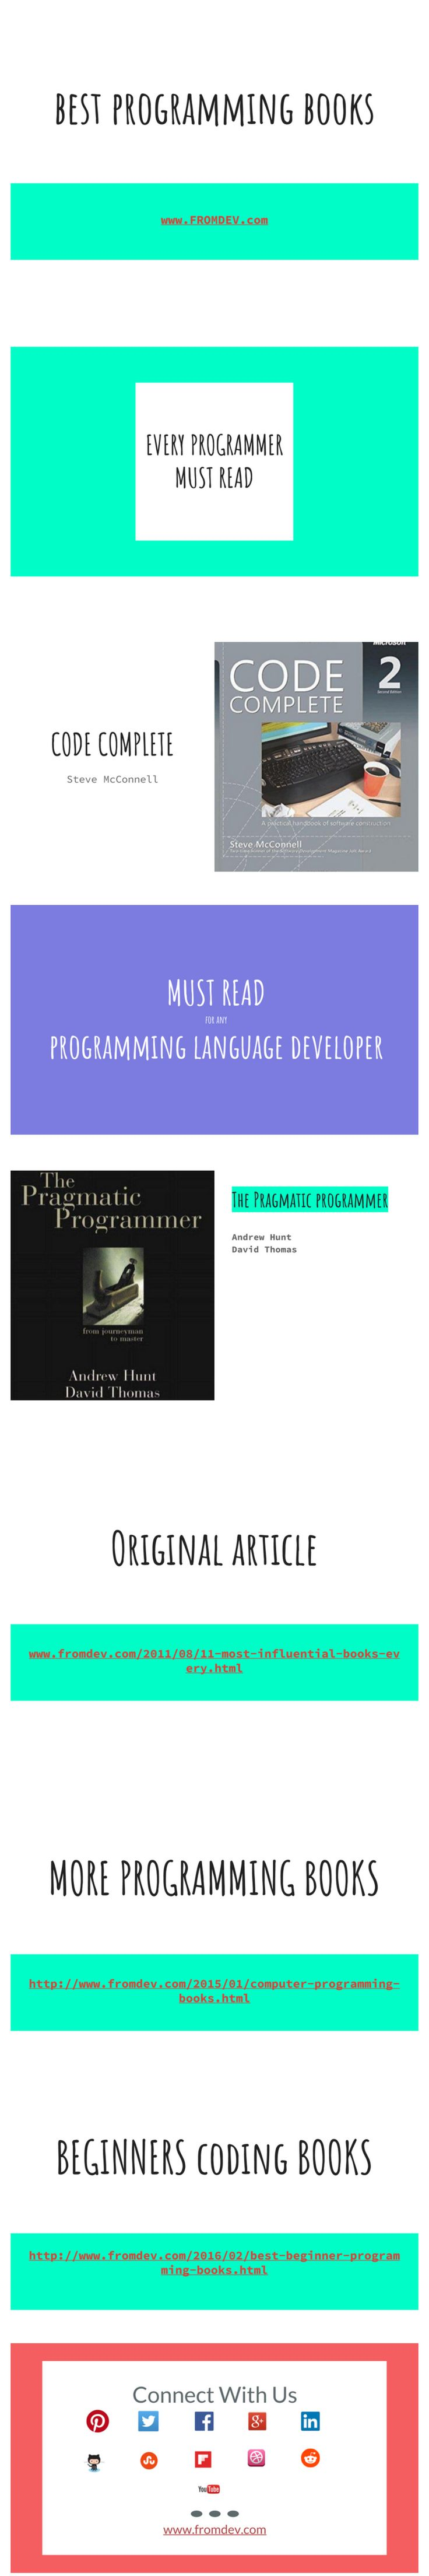 Best 10 programming images on pinterest coding programming and 2 absolute must read programming books for programmers fandeluxe Images